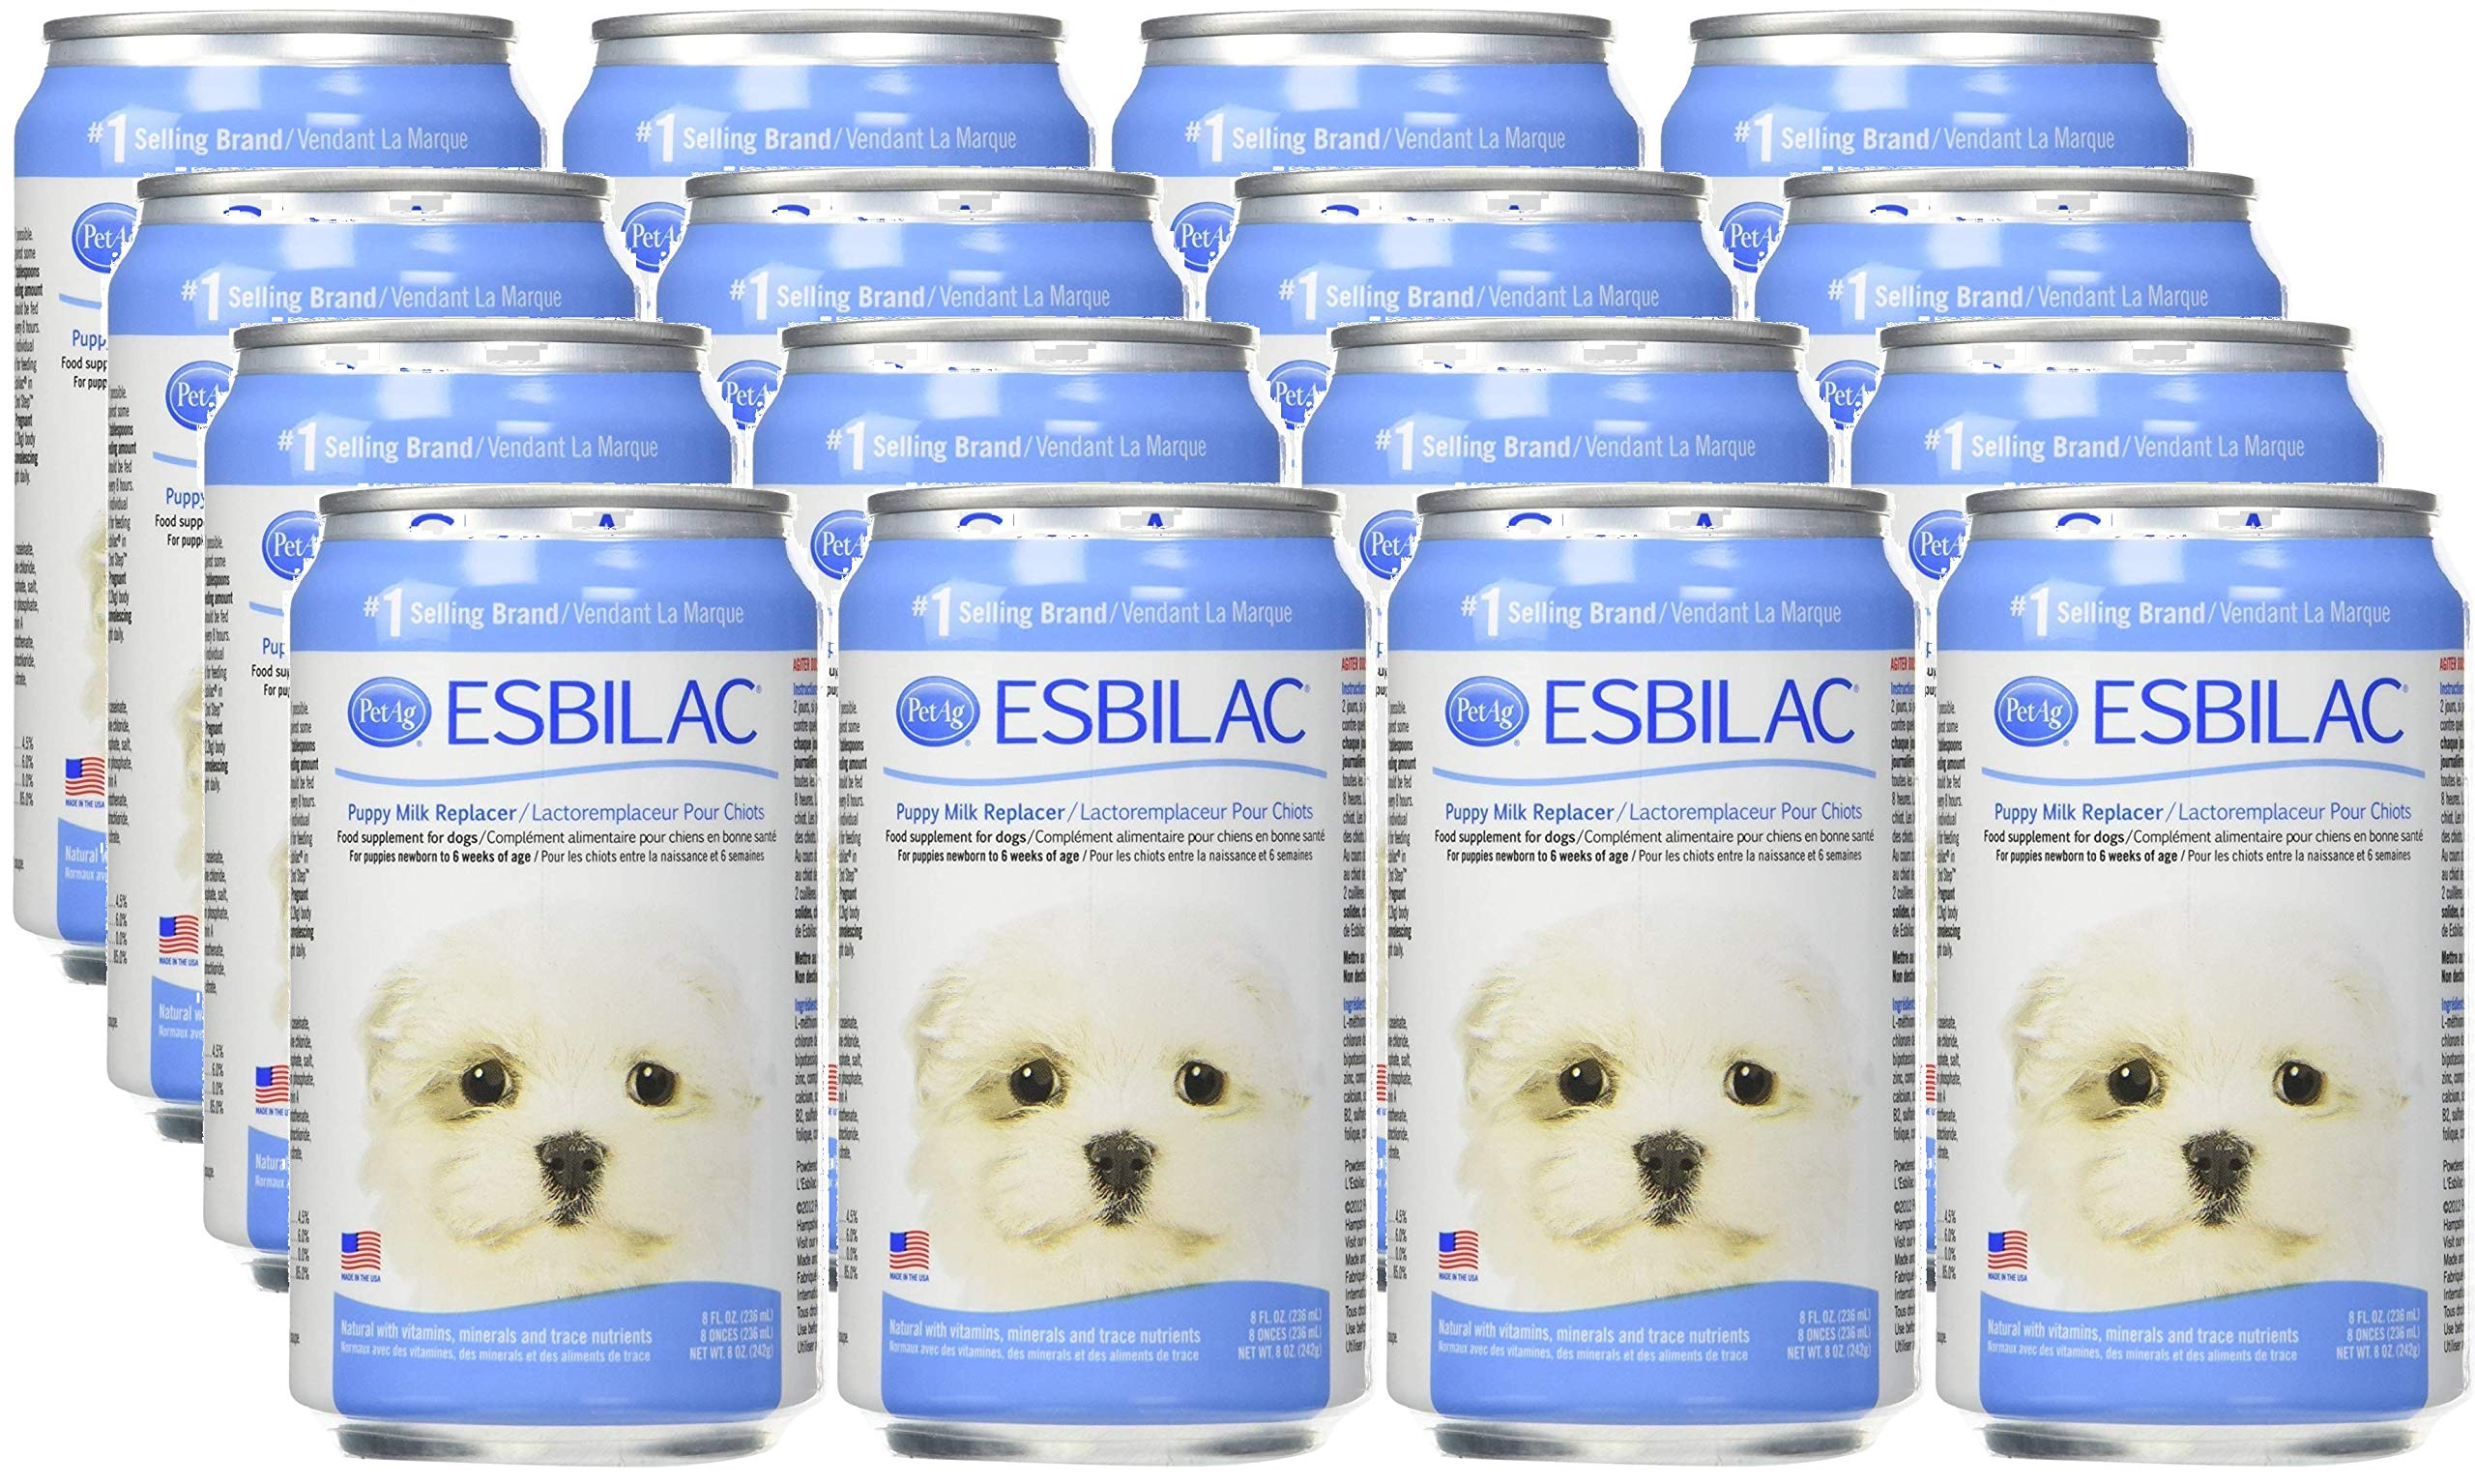 Pet Ag Esbilac Liquid Puppy Milk Replacer (12 Pack - 8 Ounces) by Pet Ag